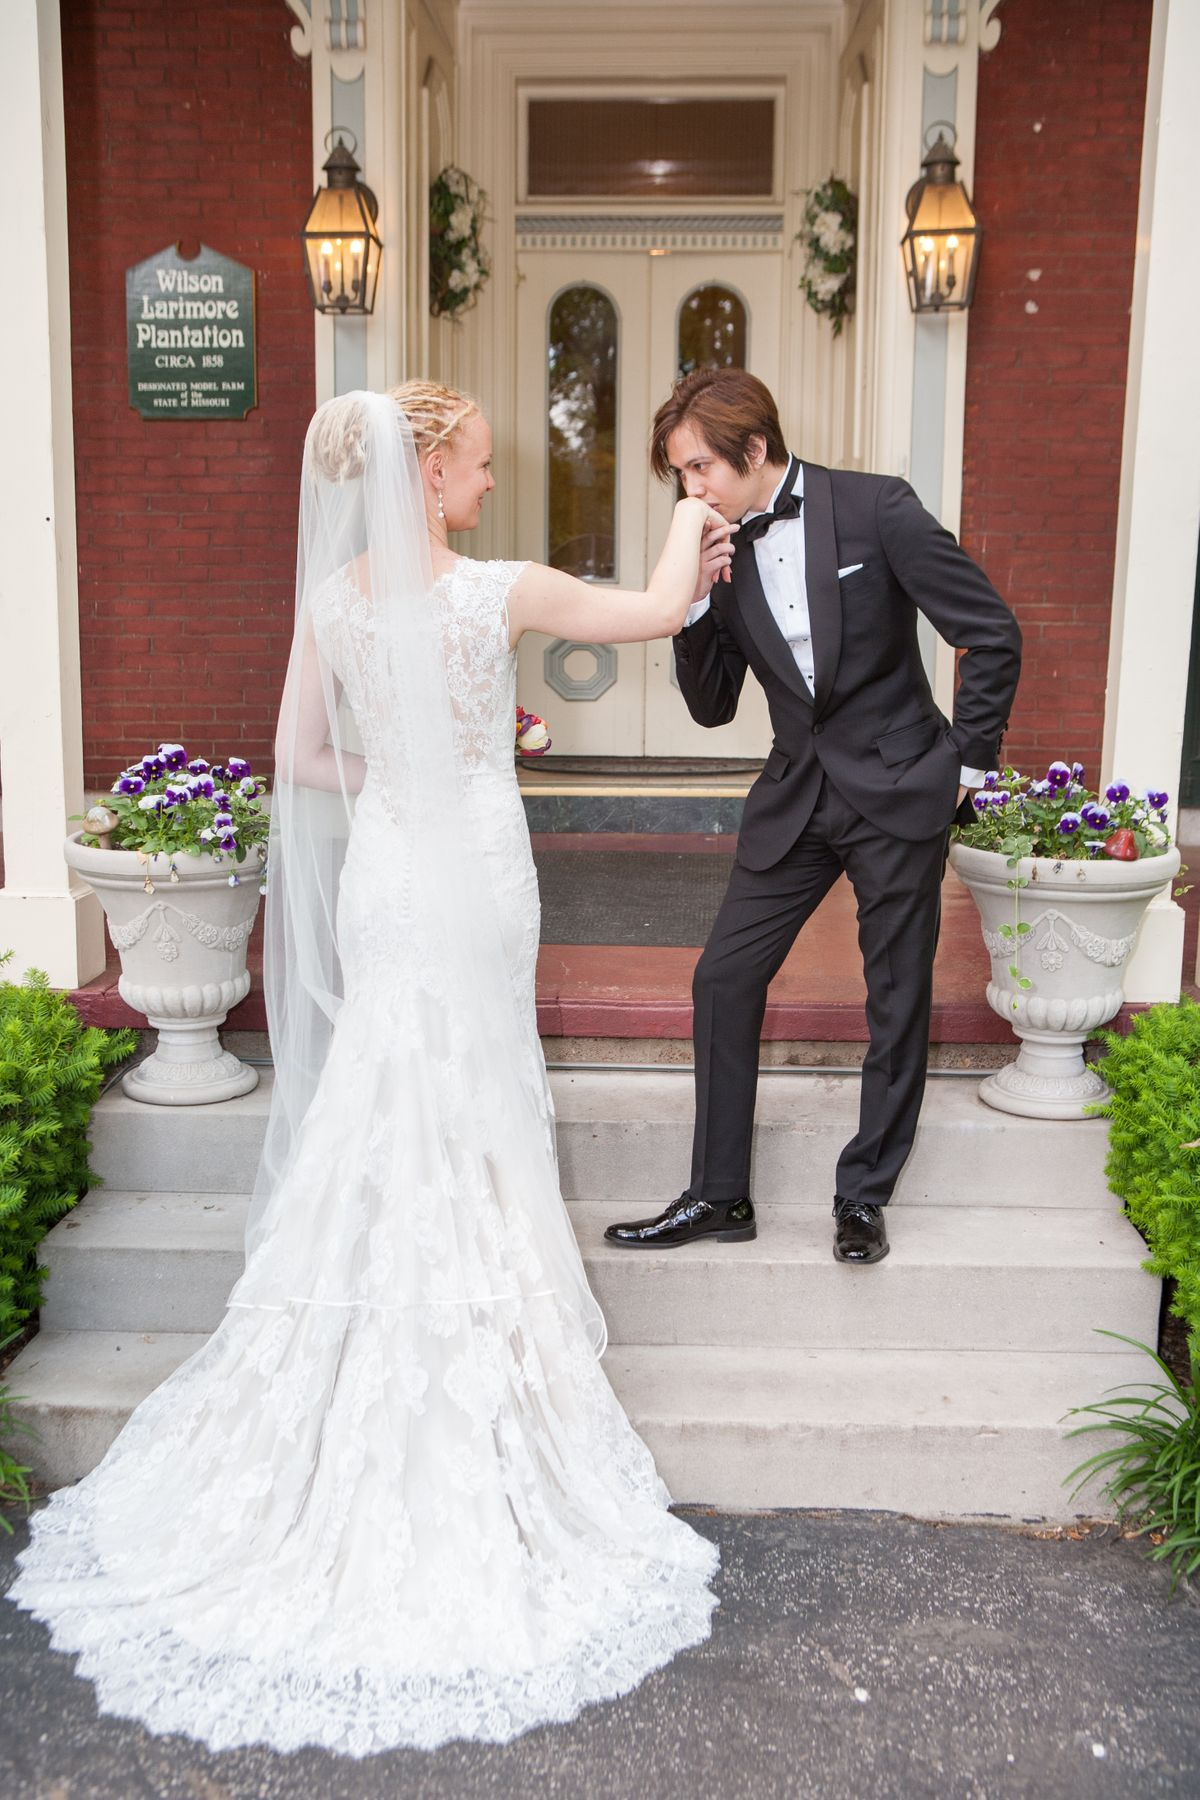 Groom kisses the Bride's hand in a romantic photo